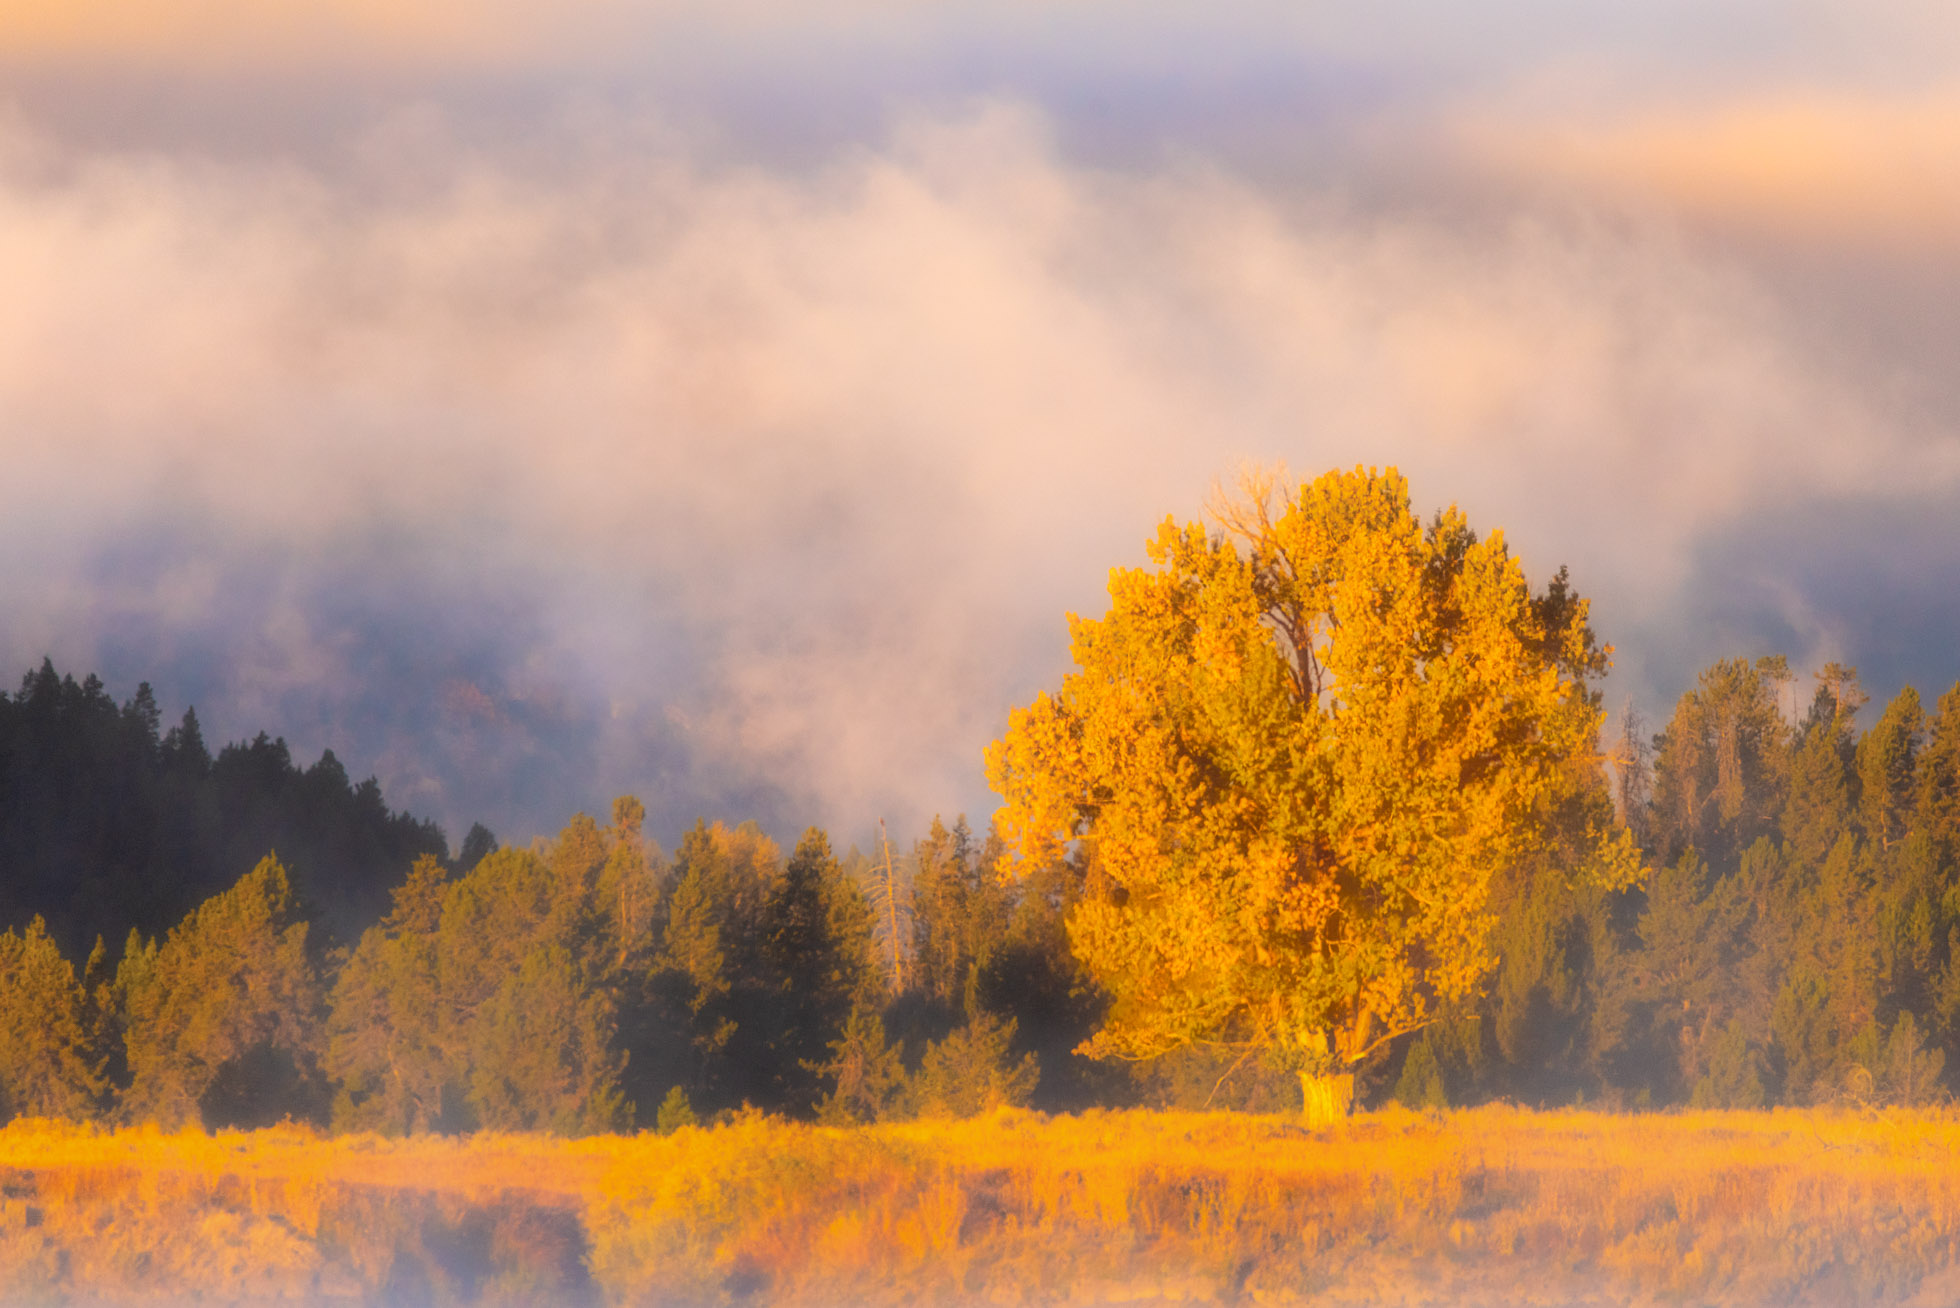 550mm  While capturing the sunrise at Oxbow Bend, I noticed the way the light was hitting this beautiful golden tree across the water. I put on my Sigma 150-600mm to isolate the tree against the background of low clouds.